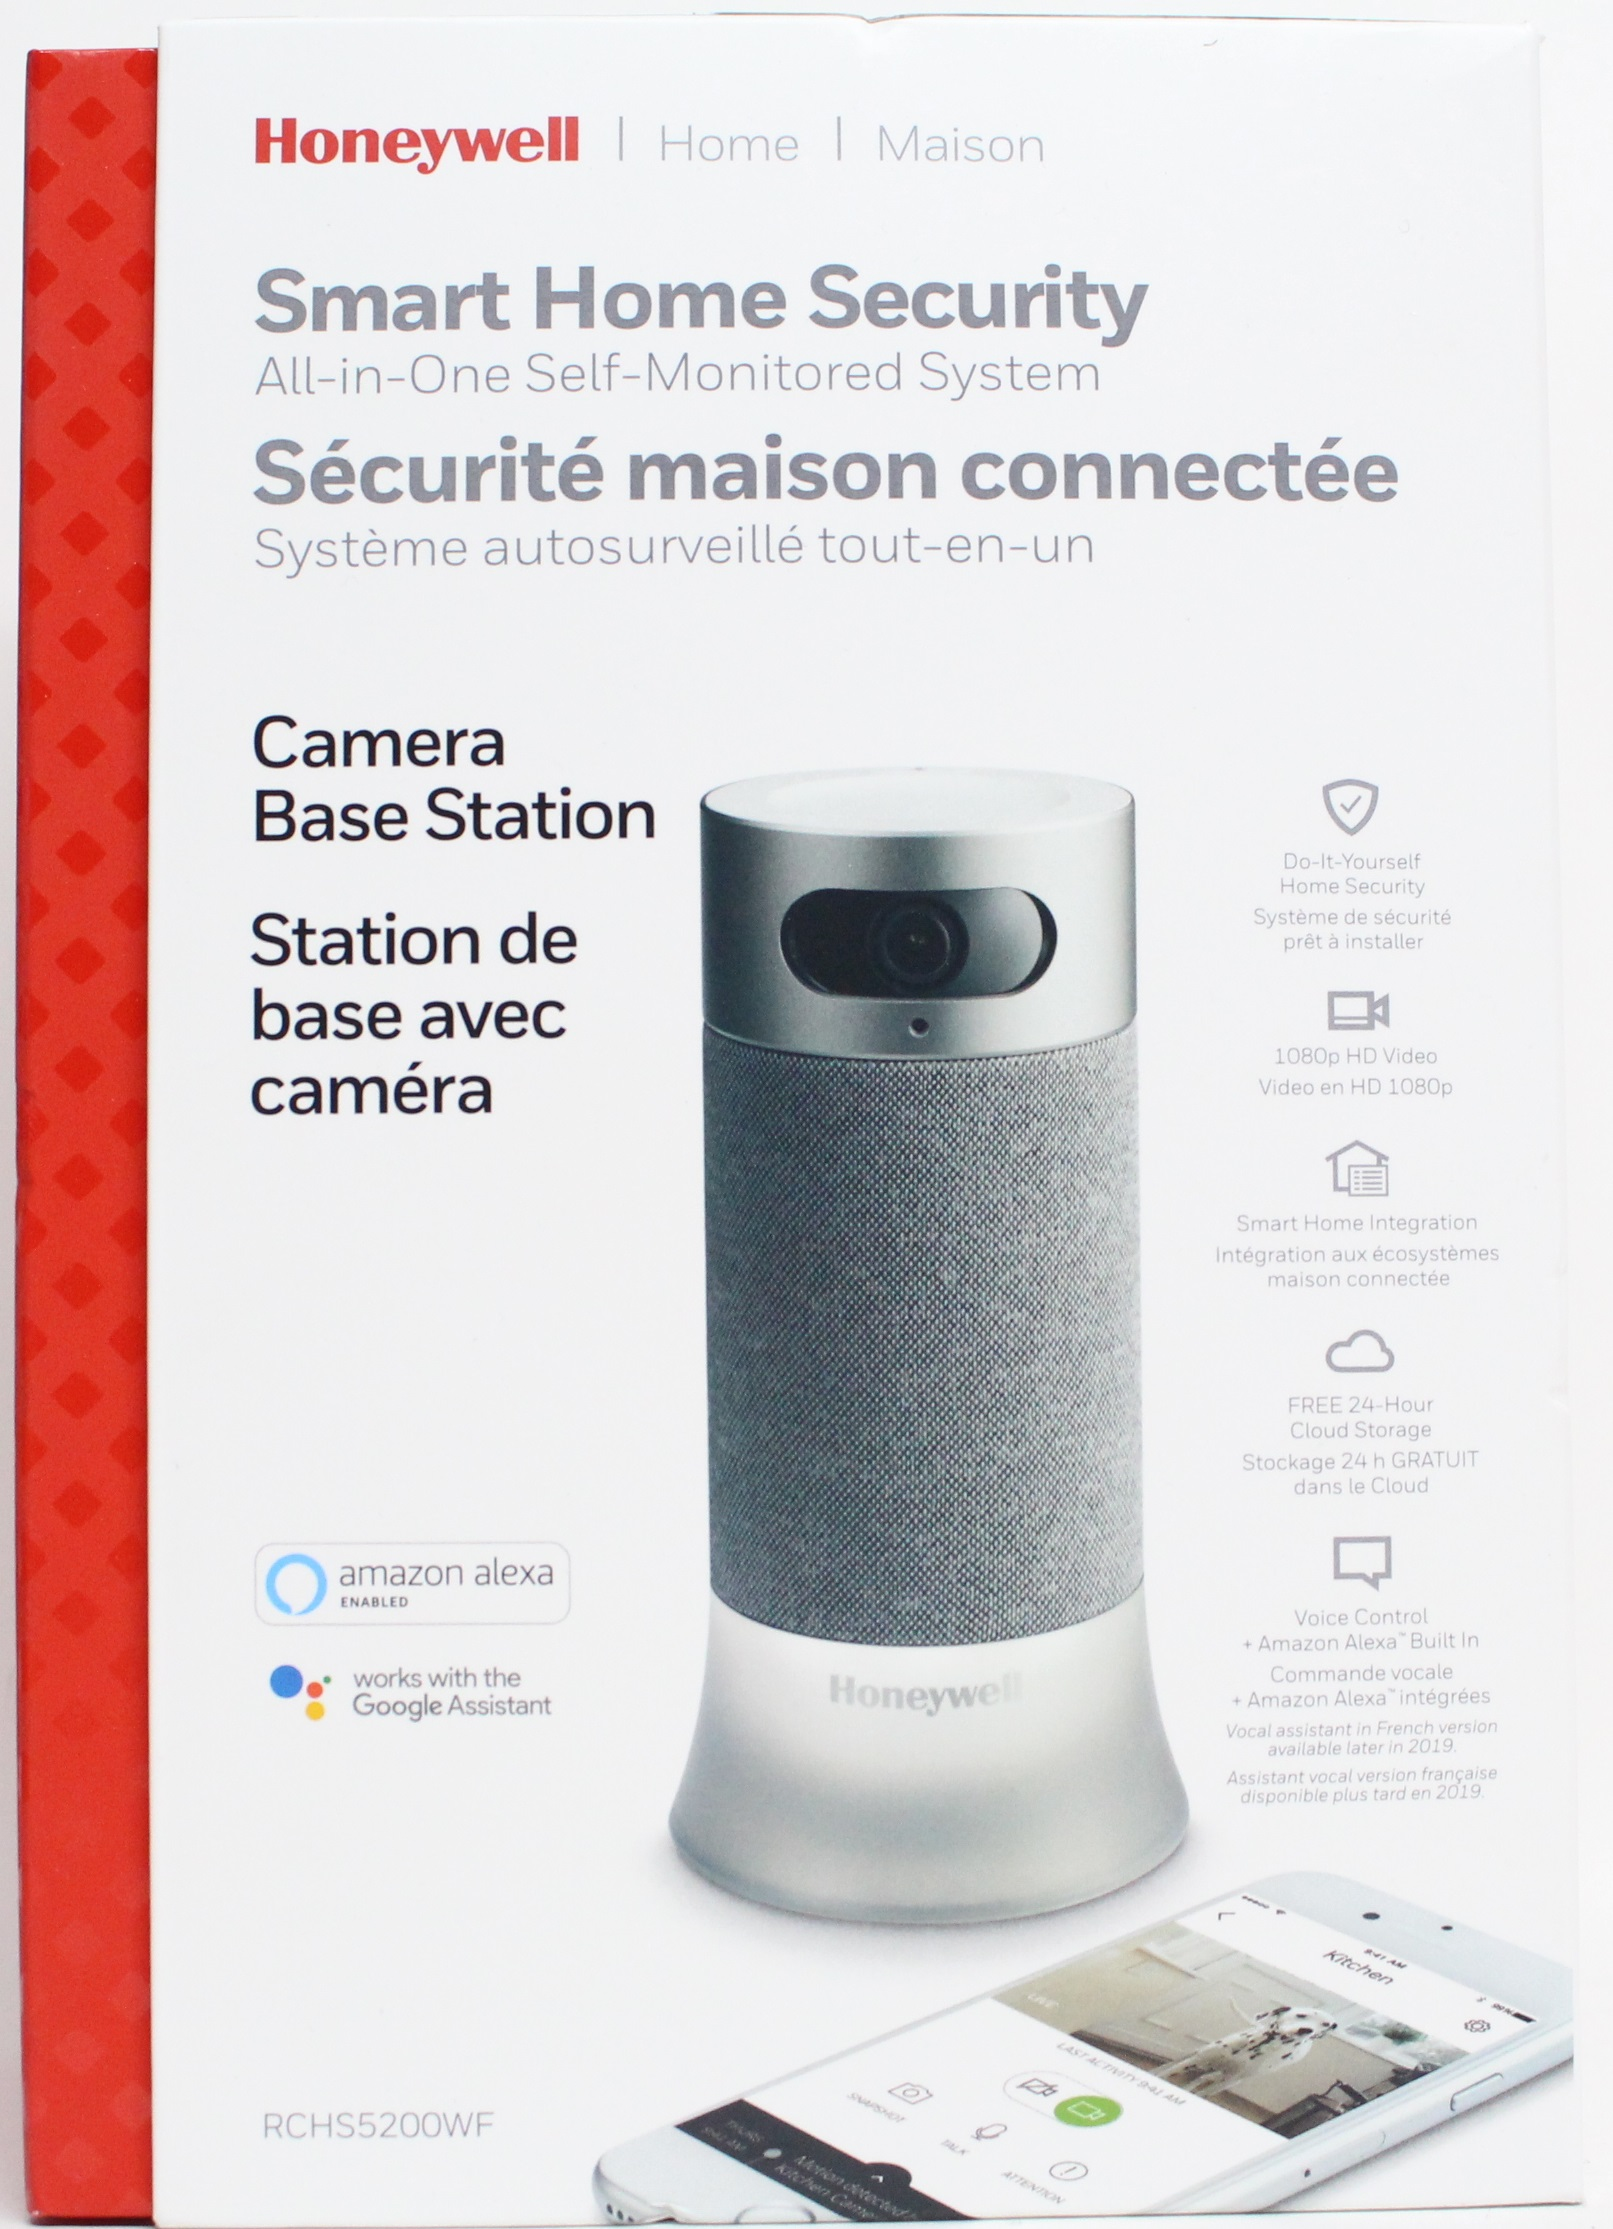 Details about Honeywell Smart Home Security Camera Base Station with Alexa  & Google Assistant